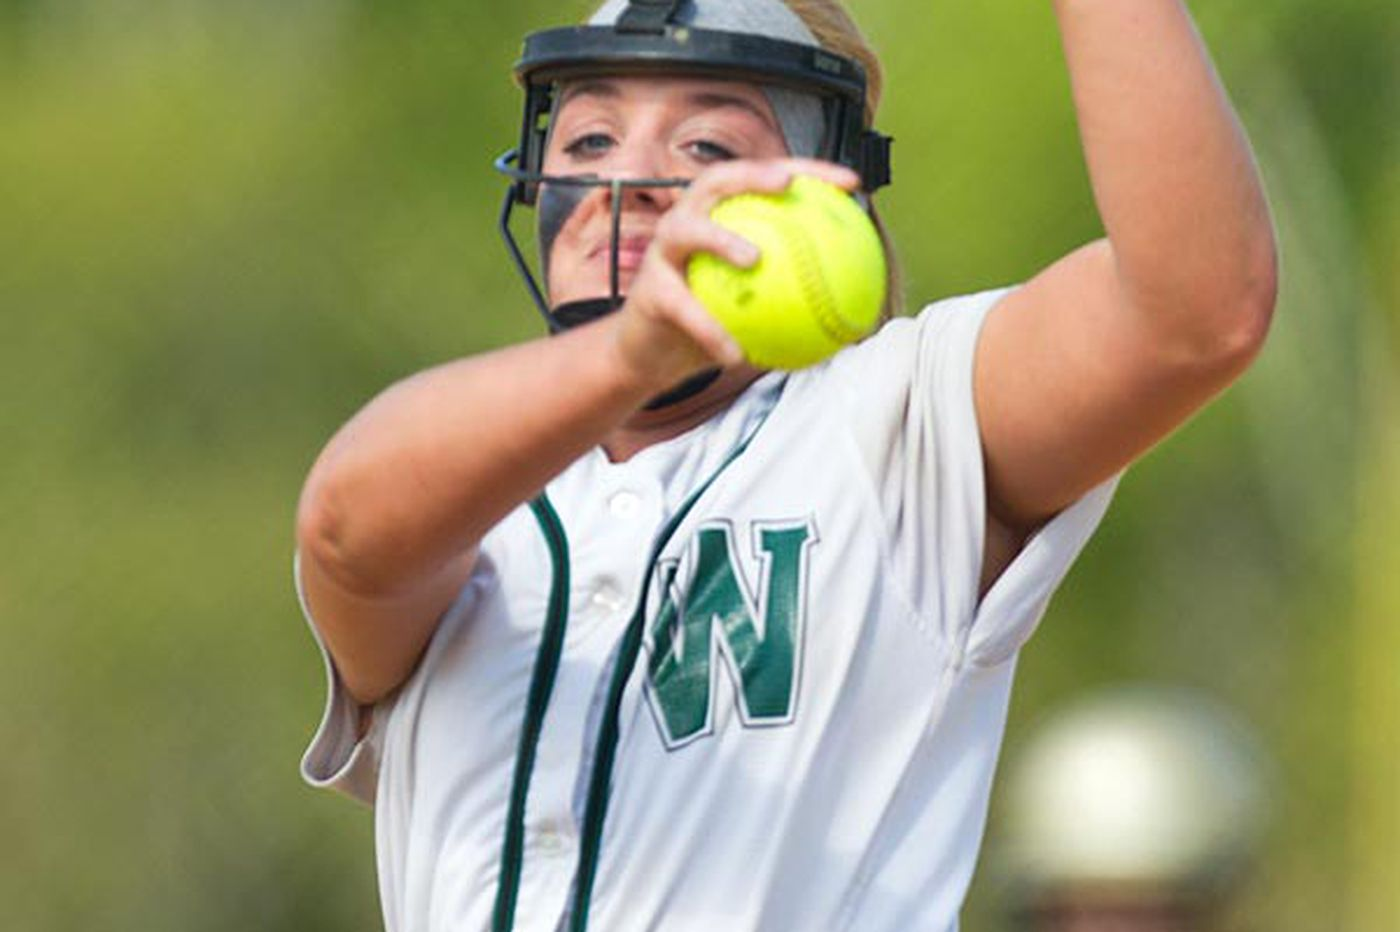 Winslow pitcher gets mind in gear